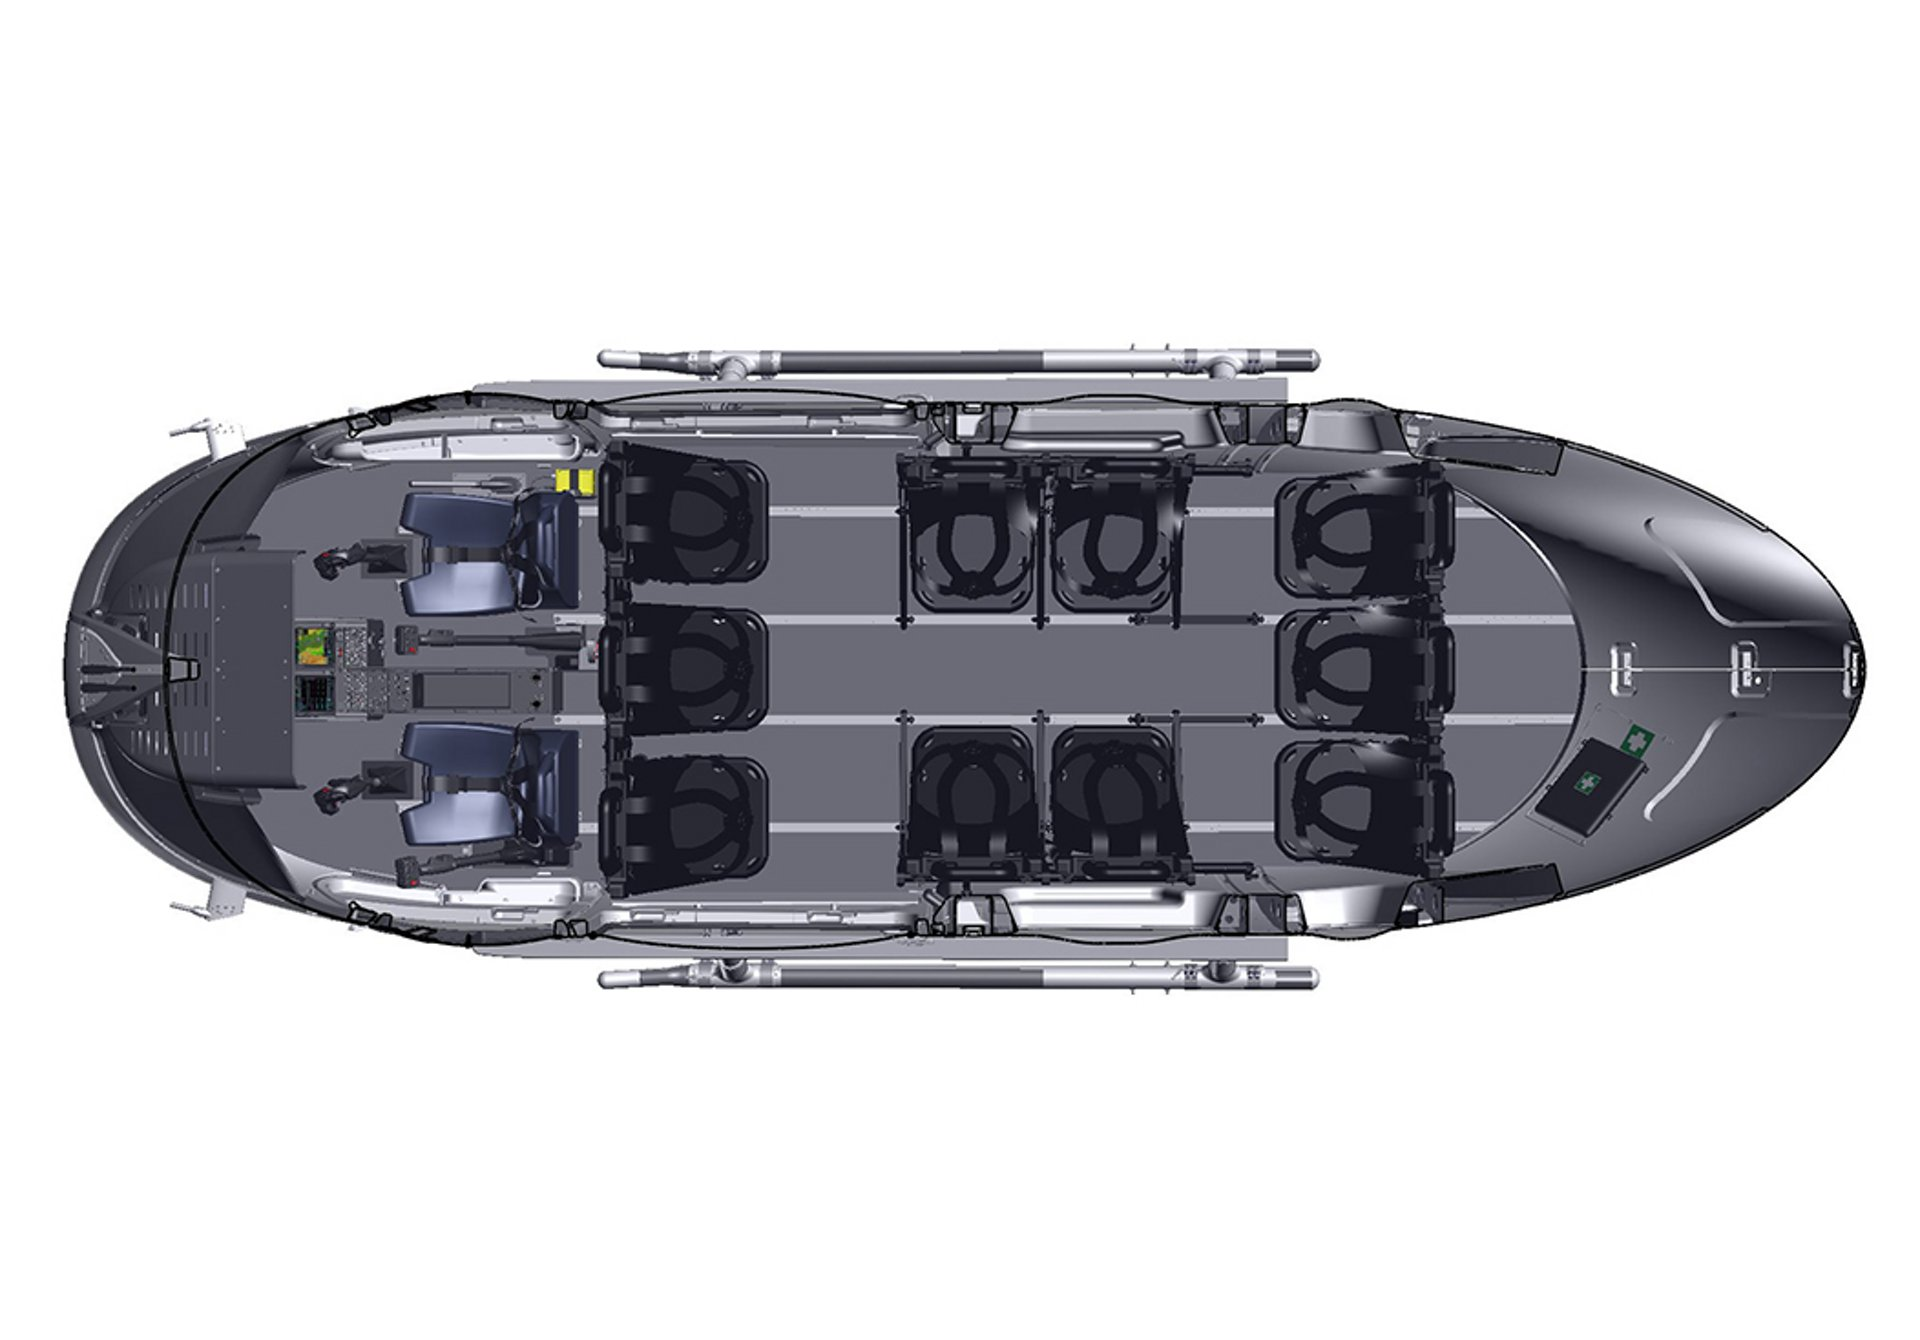 Diagram of an Airbus H145 helicopter cabin configuration with seating capacity for 10 passengers